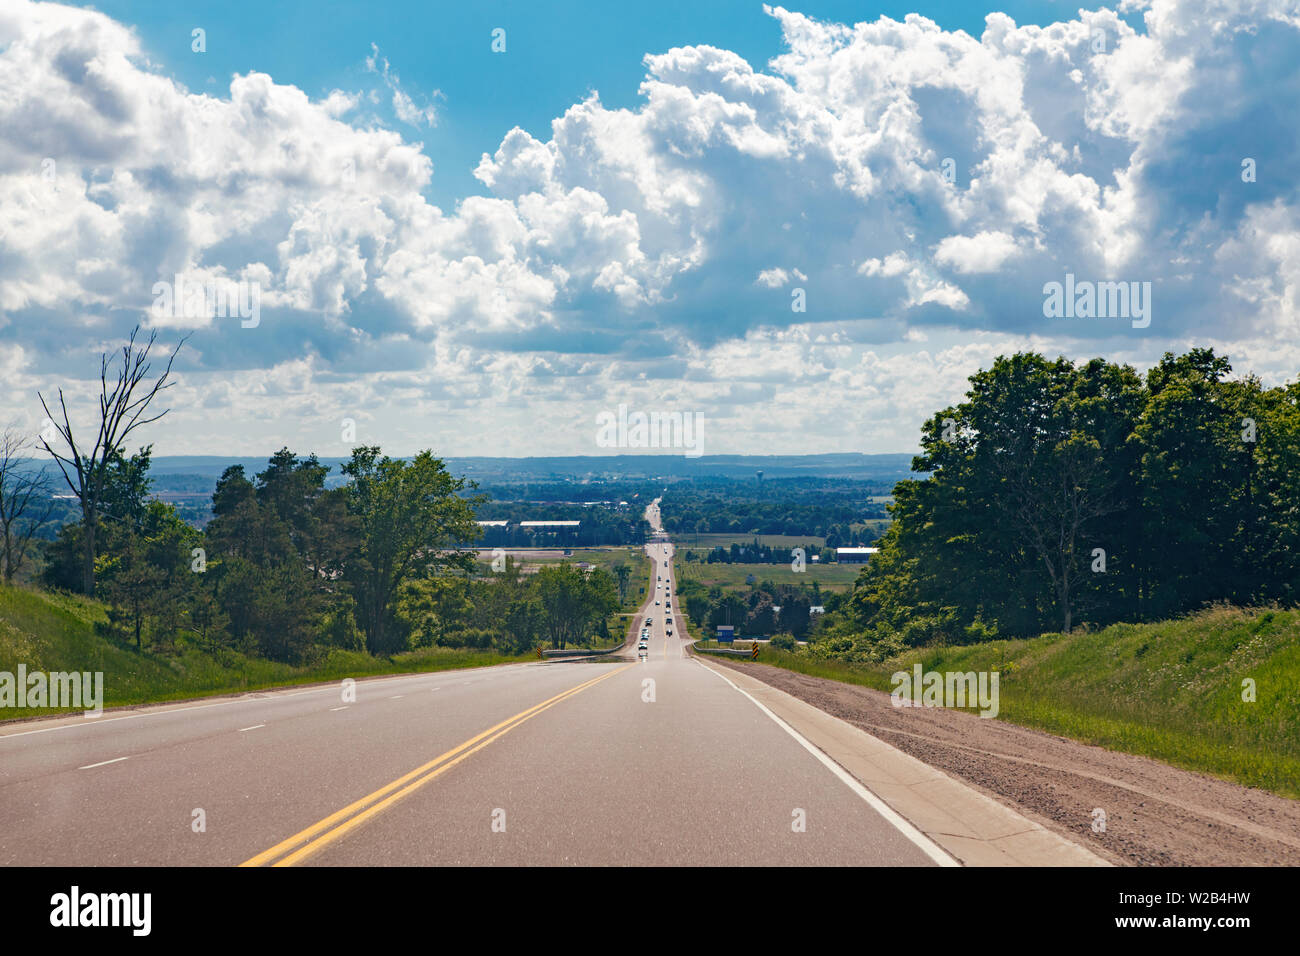 Beautiful landscape midday view of Canadian Ontario country side road with cars traffic during sunny day with white clouds in blue sky. Busy outdoor c - Stock Image